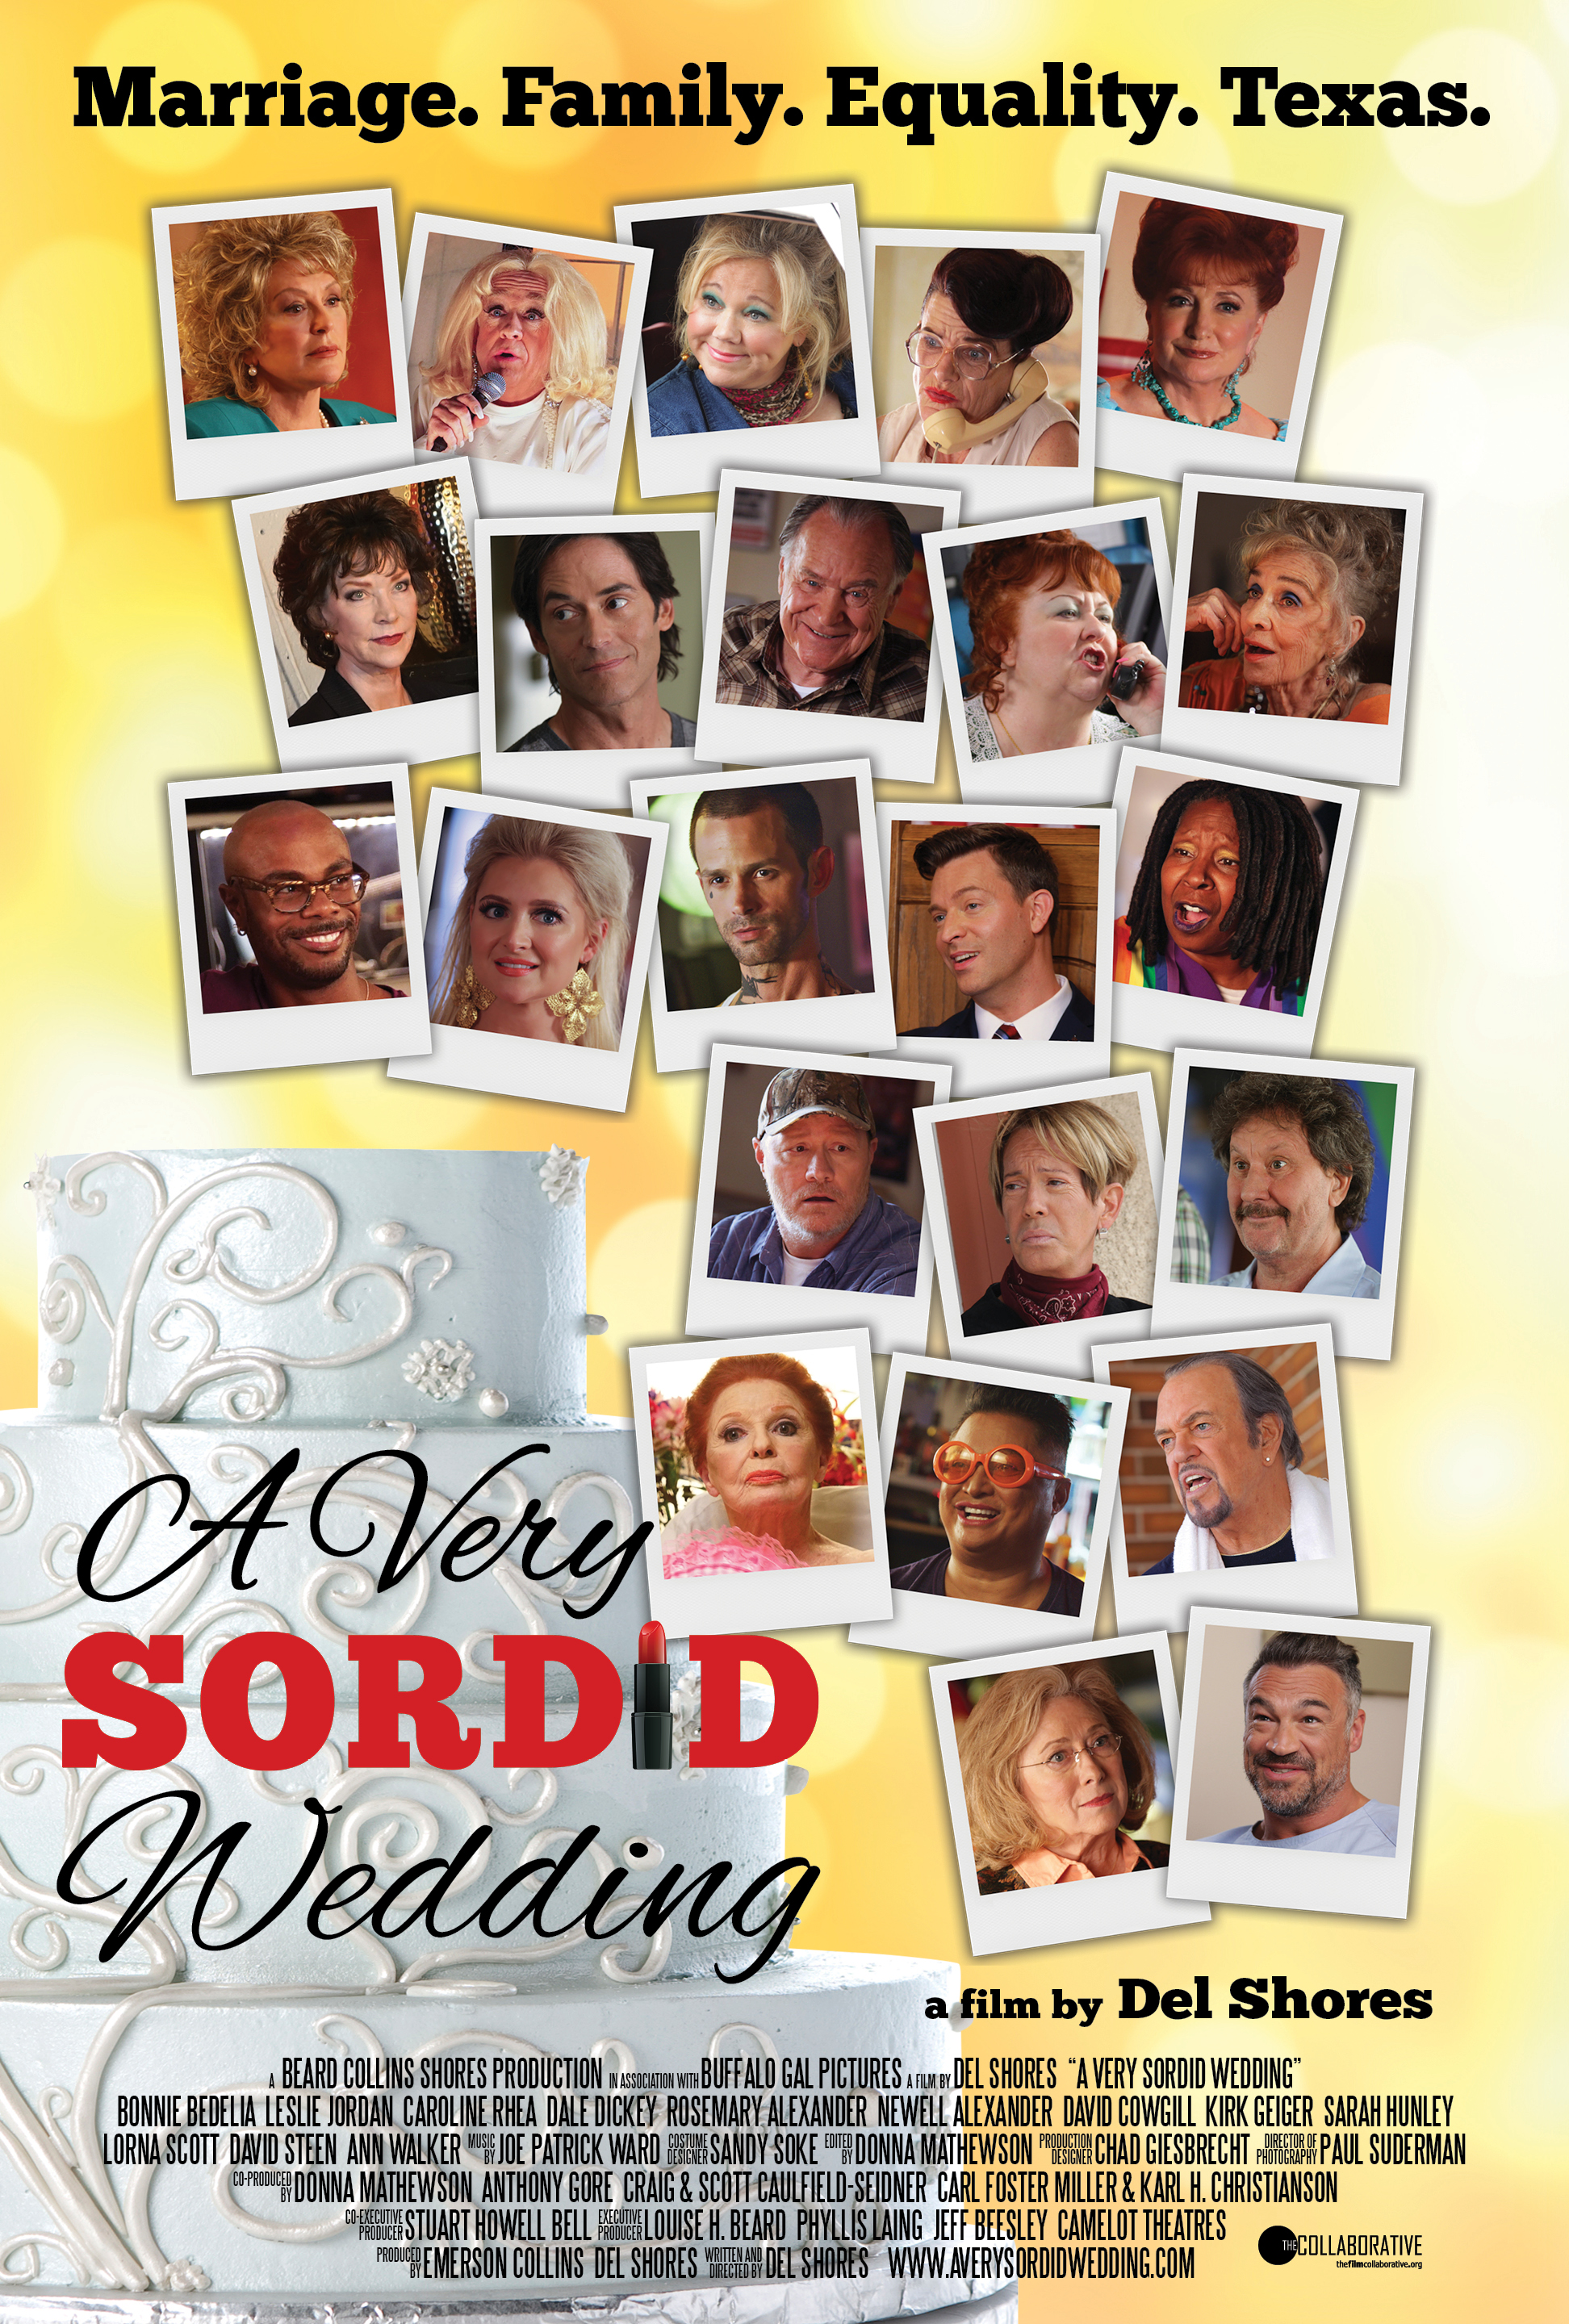 A Very Sordid Wedding (9) - IMDb